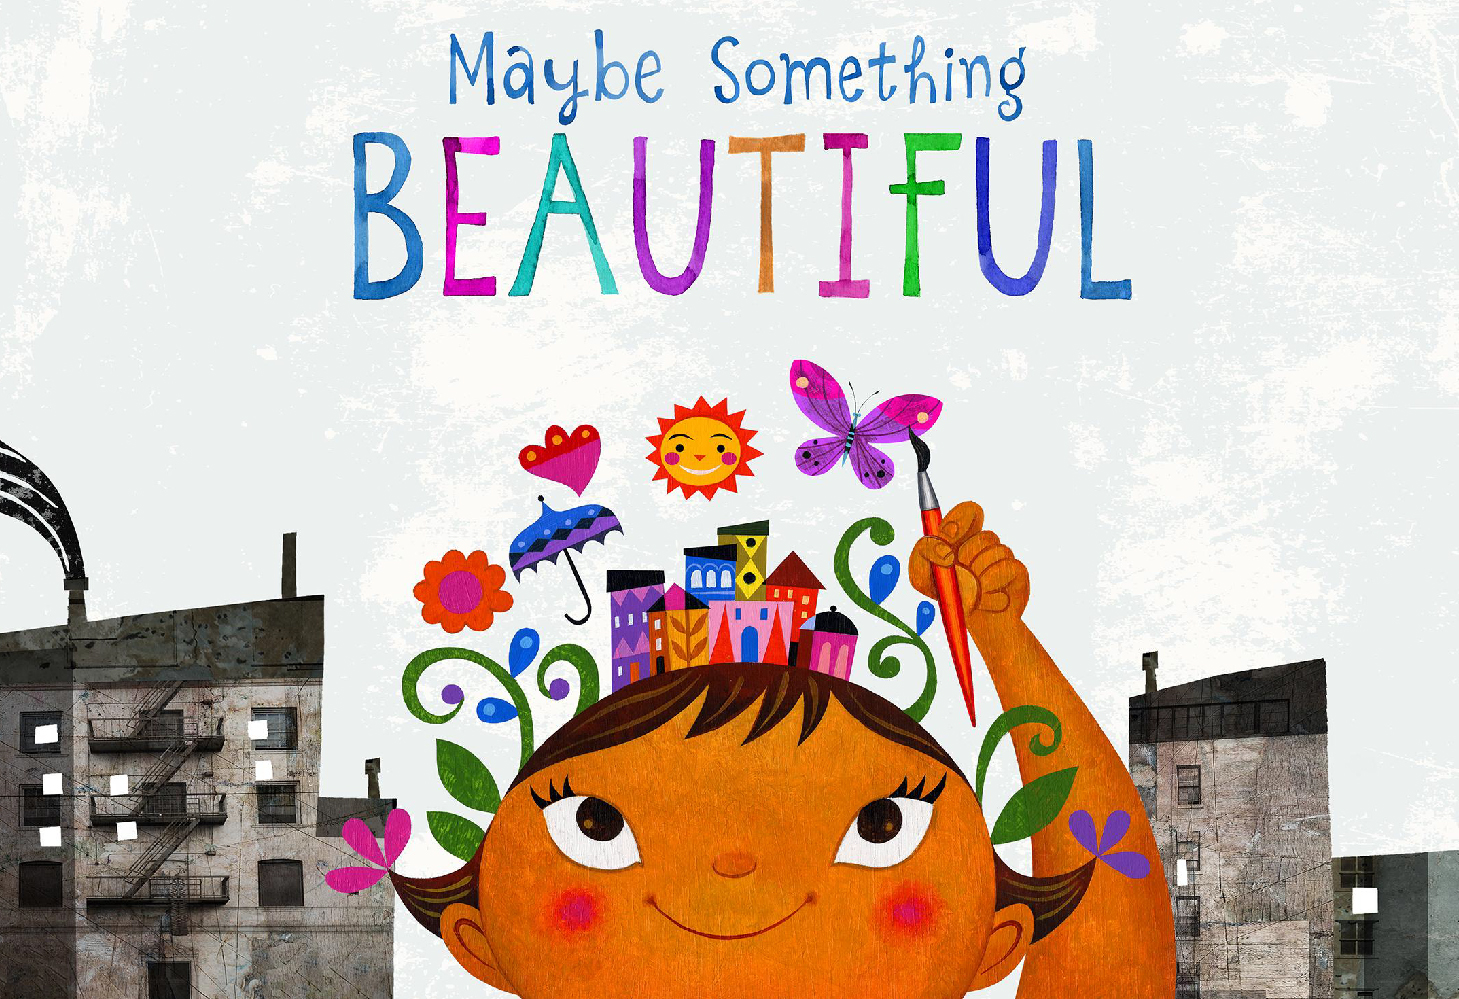 Maybe something beautiful BOOK illustration of a little girl holding a paintbrush and colorful buildings on her head